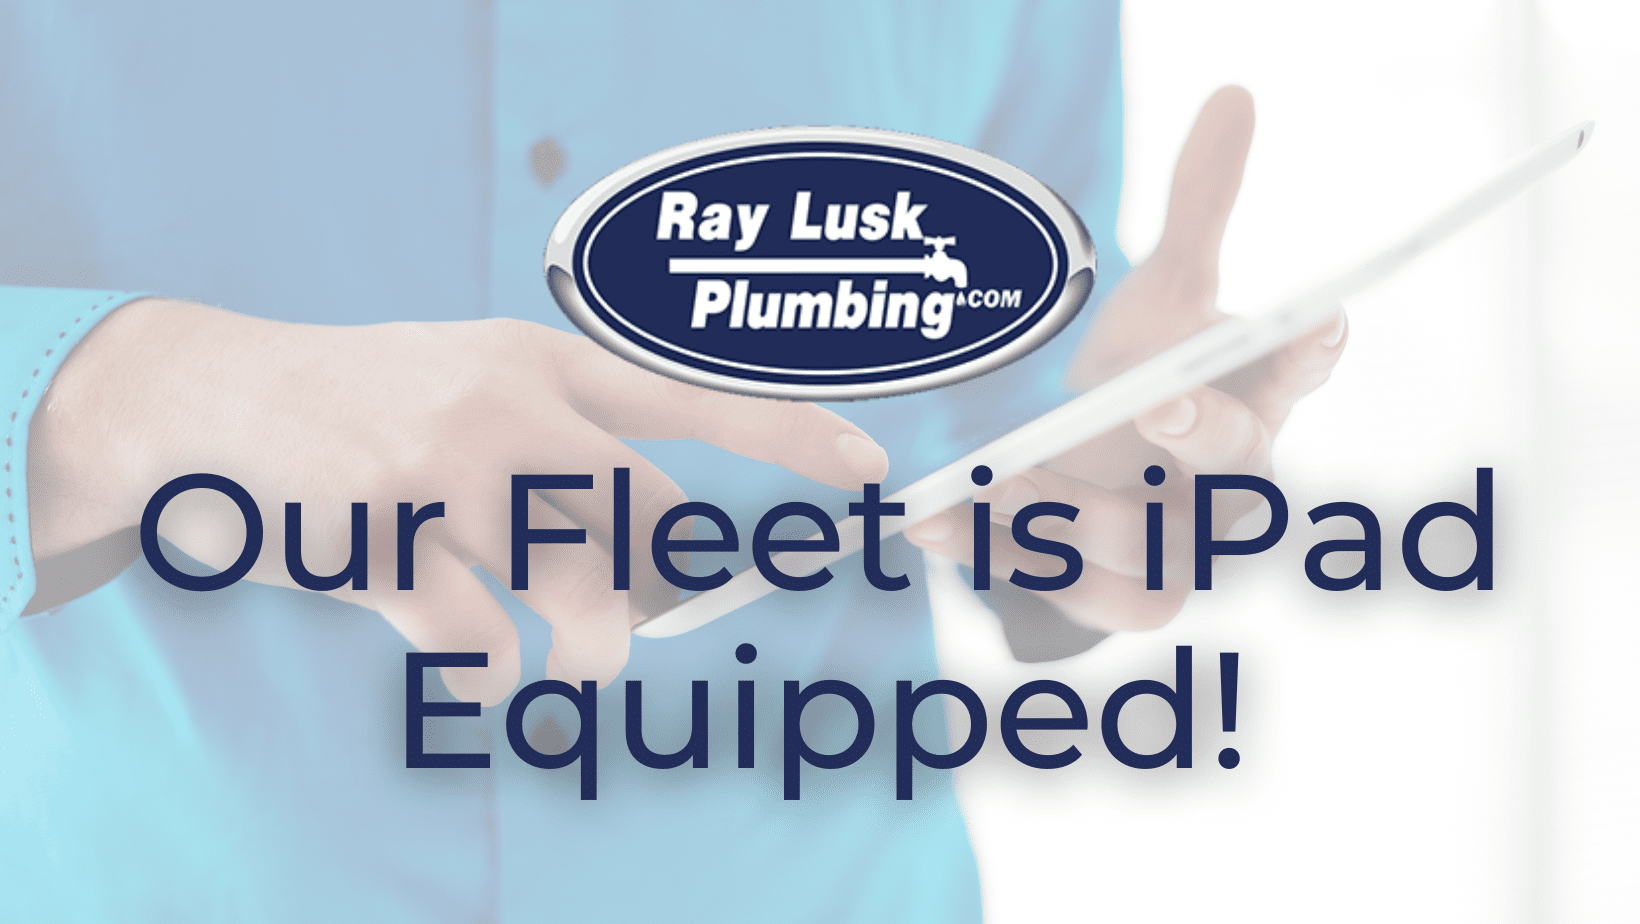 Image text reads: Our fleet is iPad equipped